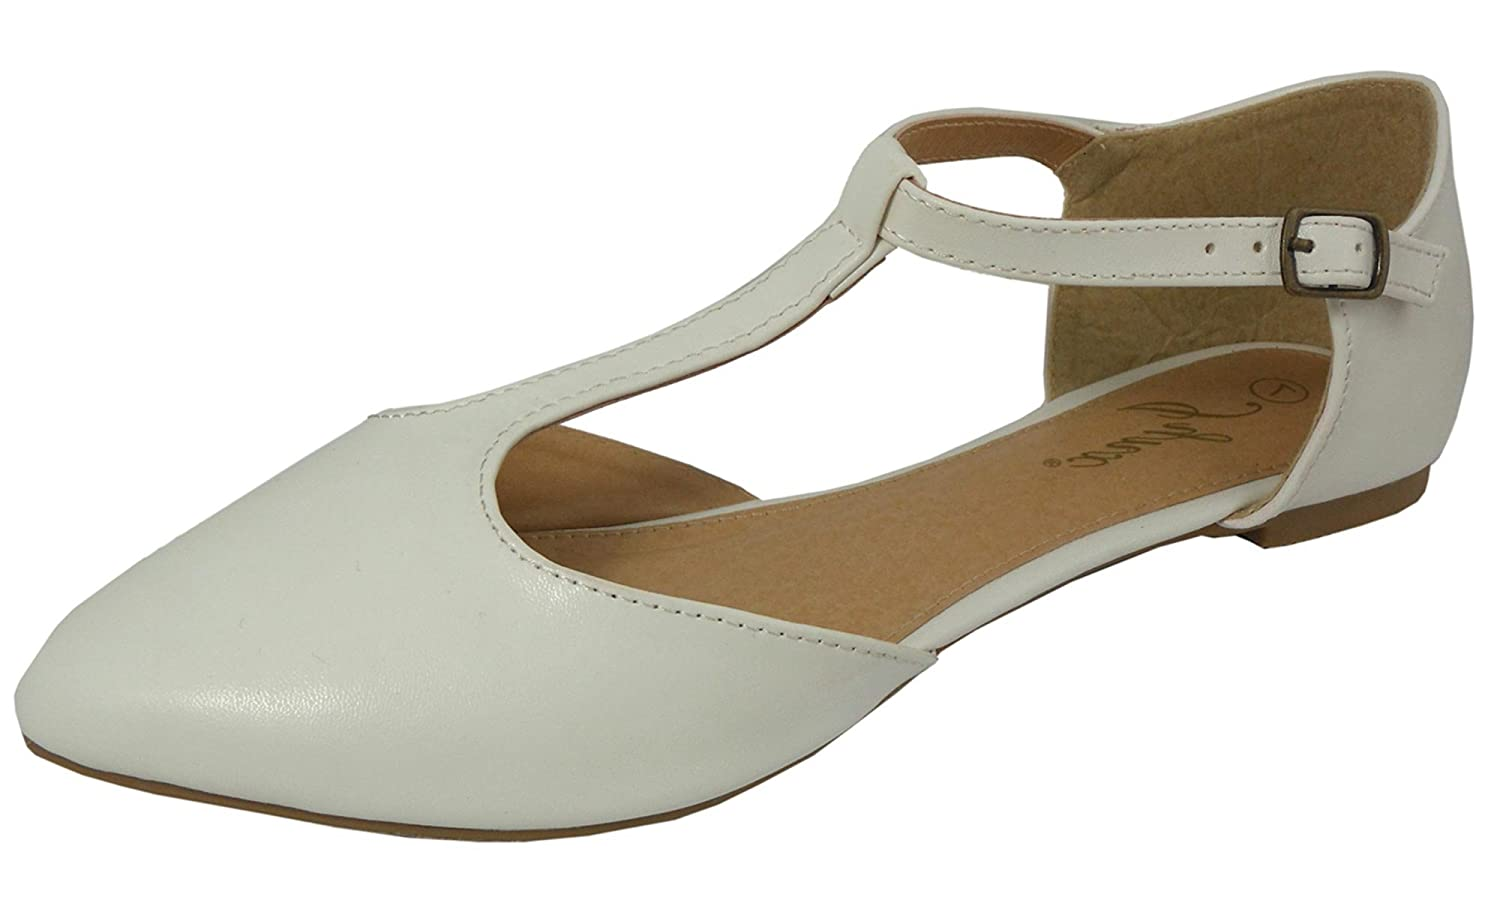 1920s Style Shoes Jynx Womens Mary Jane T-Strap Pointed Toe Ballet Flat $21.25 AT vintagedancer.com